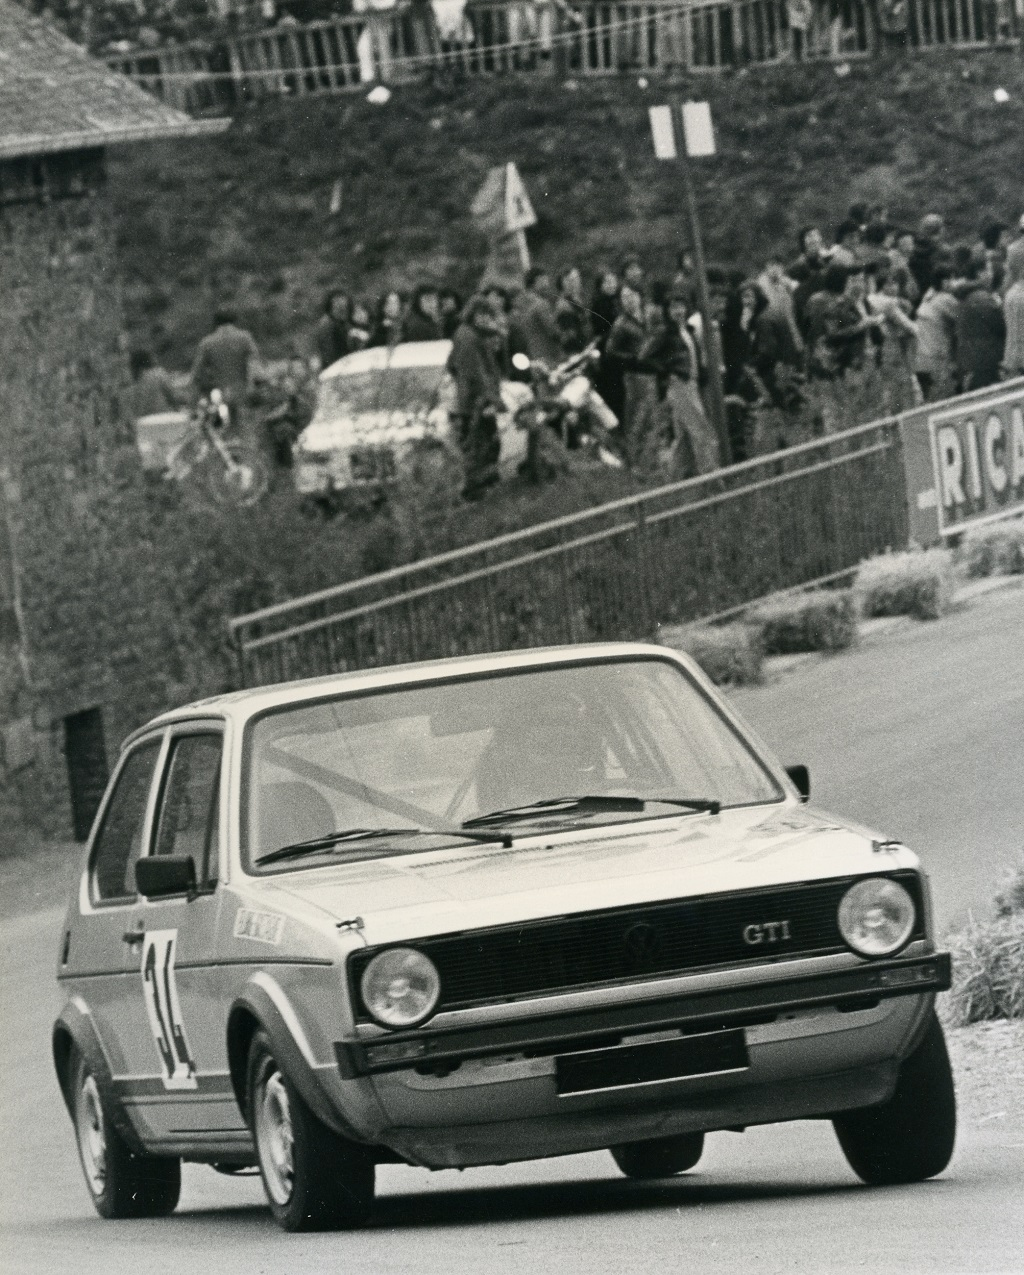 Thierry-Le-Bras - VW-Golf-GTI -5- 1977 - Saint-Germain-sur-Ille - Photo-Photo-Actualité